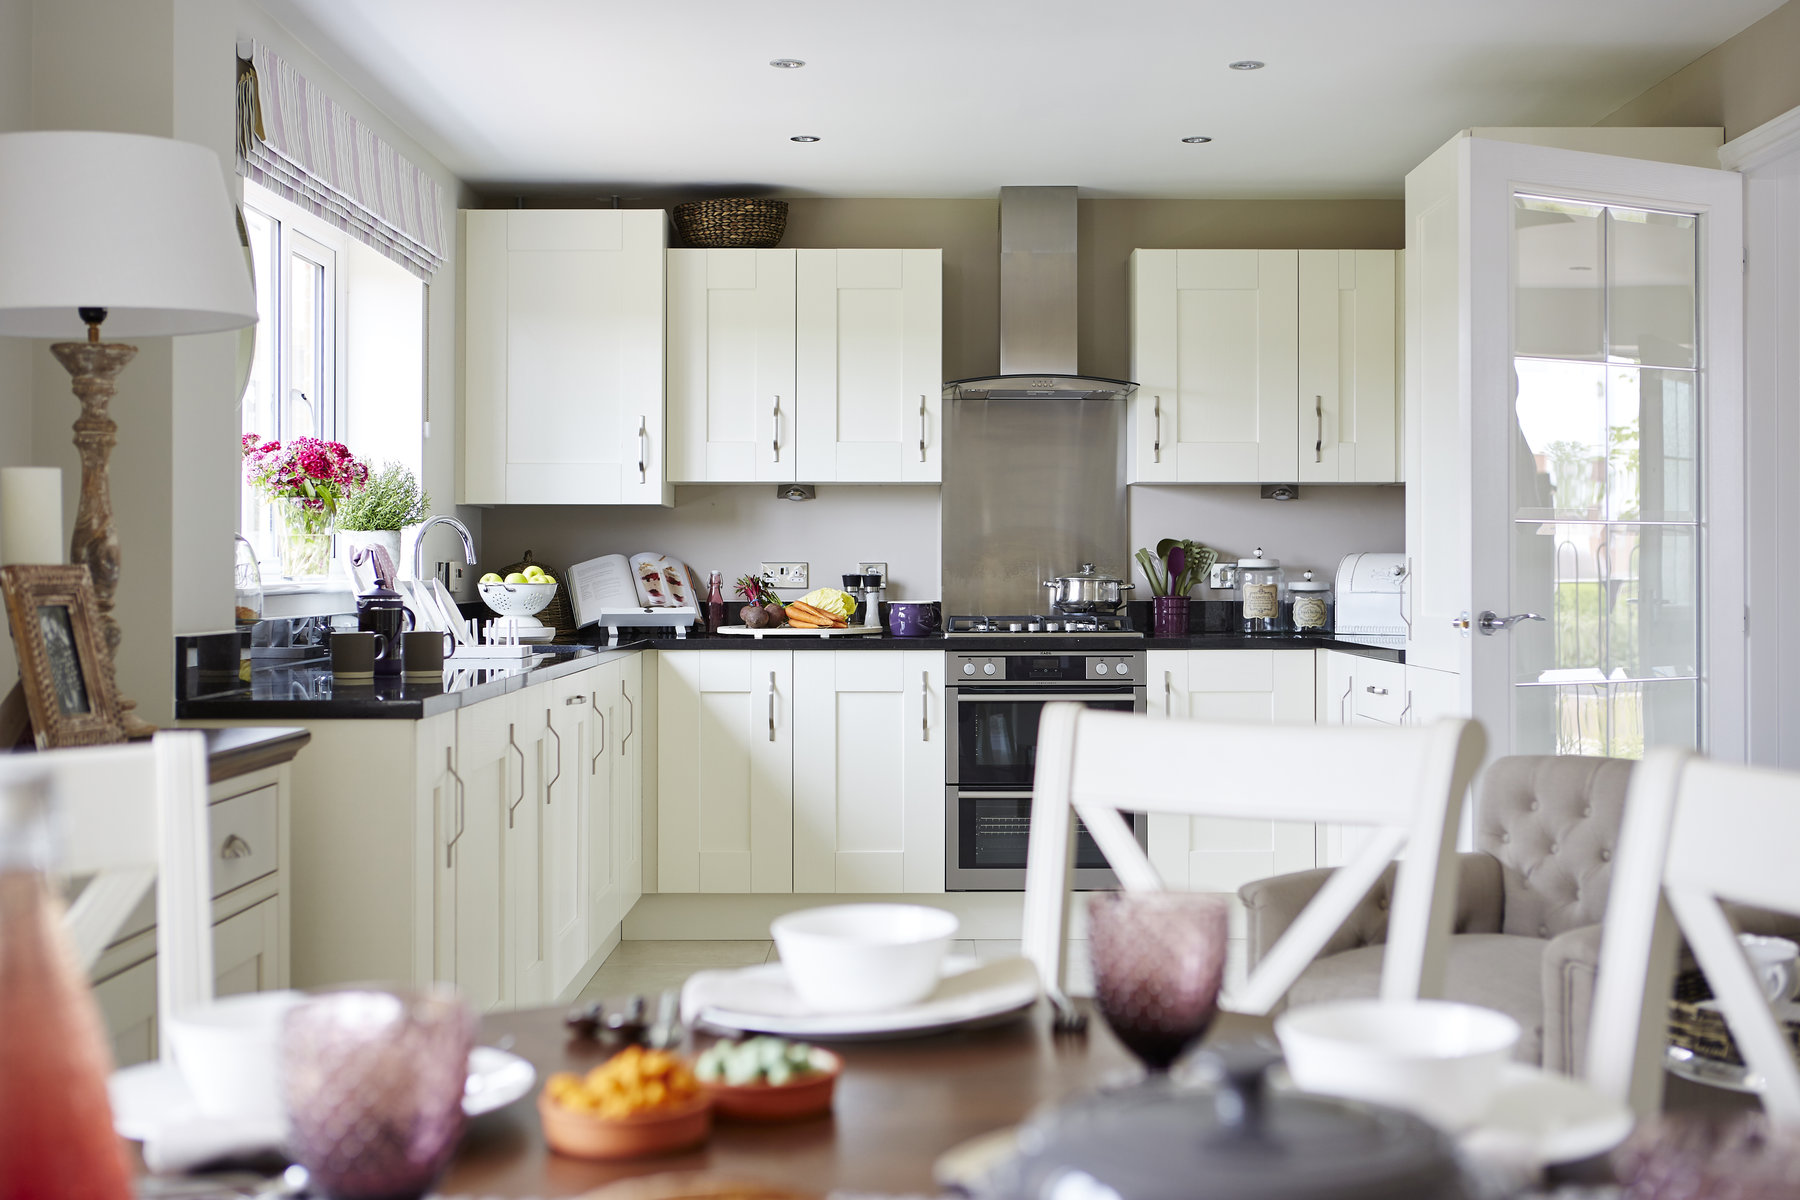 rsz_6tw_mids_burlington_fields_shifnal_pa48_shelford_kitchen